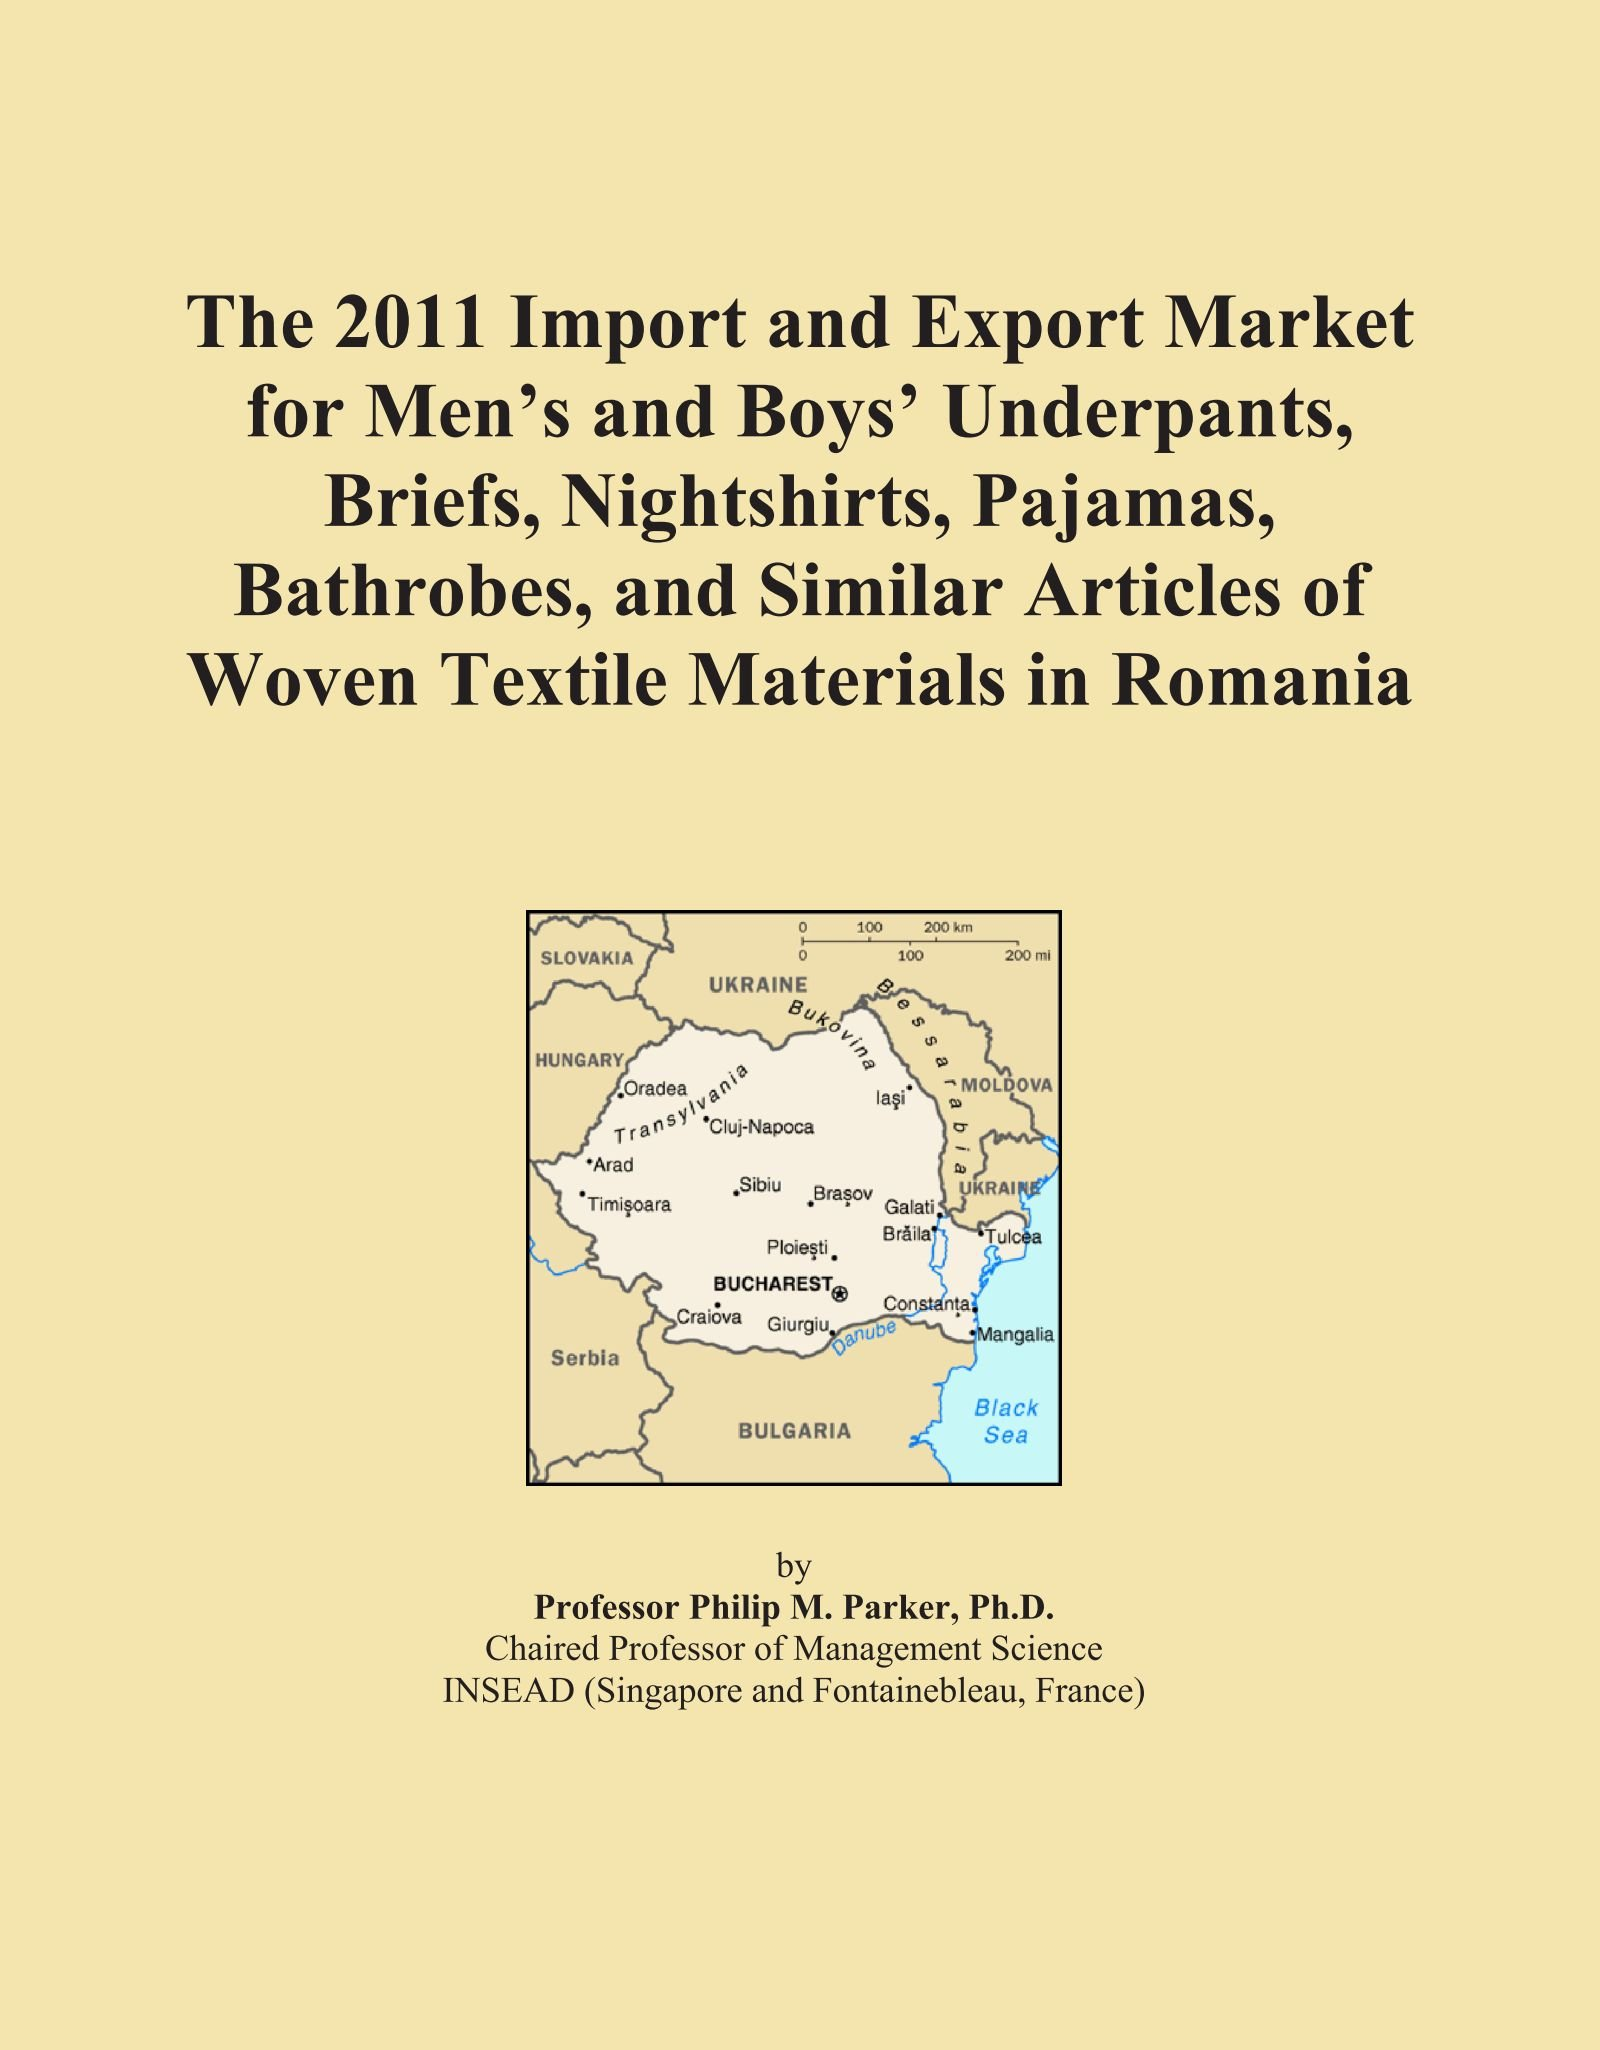 The 2011 Import and Export Market for Men's and Boys' Underpants, Briefs, Nightshirts, Pajamas, Bathrobes, and Similar Articles of Woven Textile Materials in Romania pdf